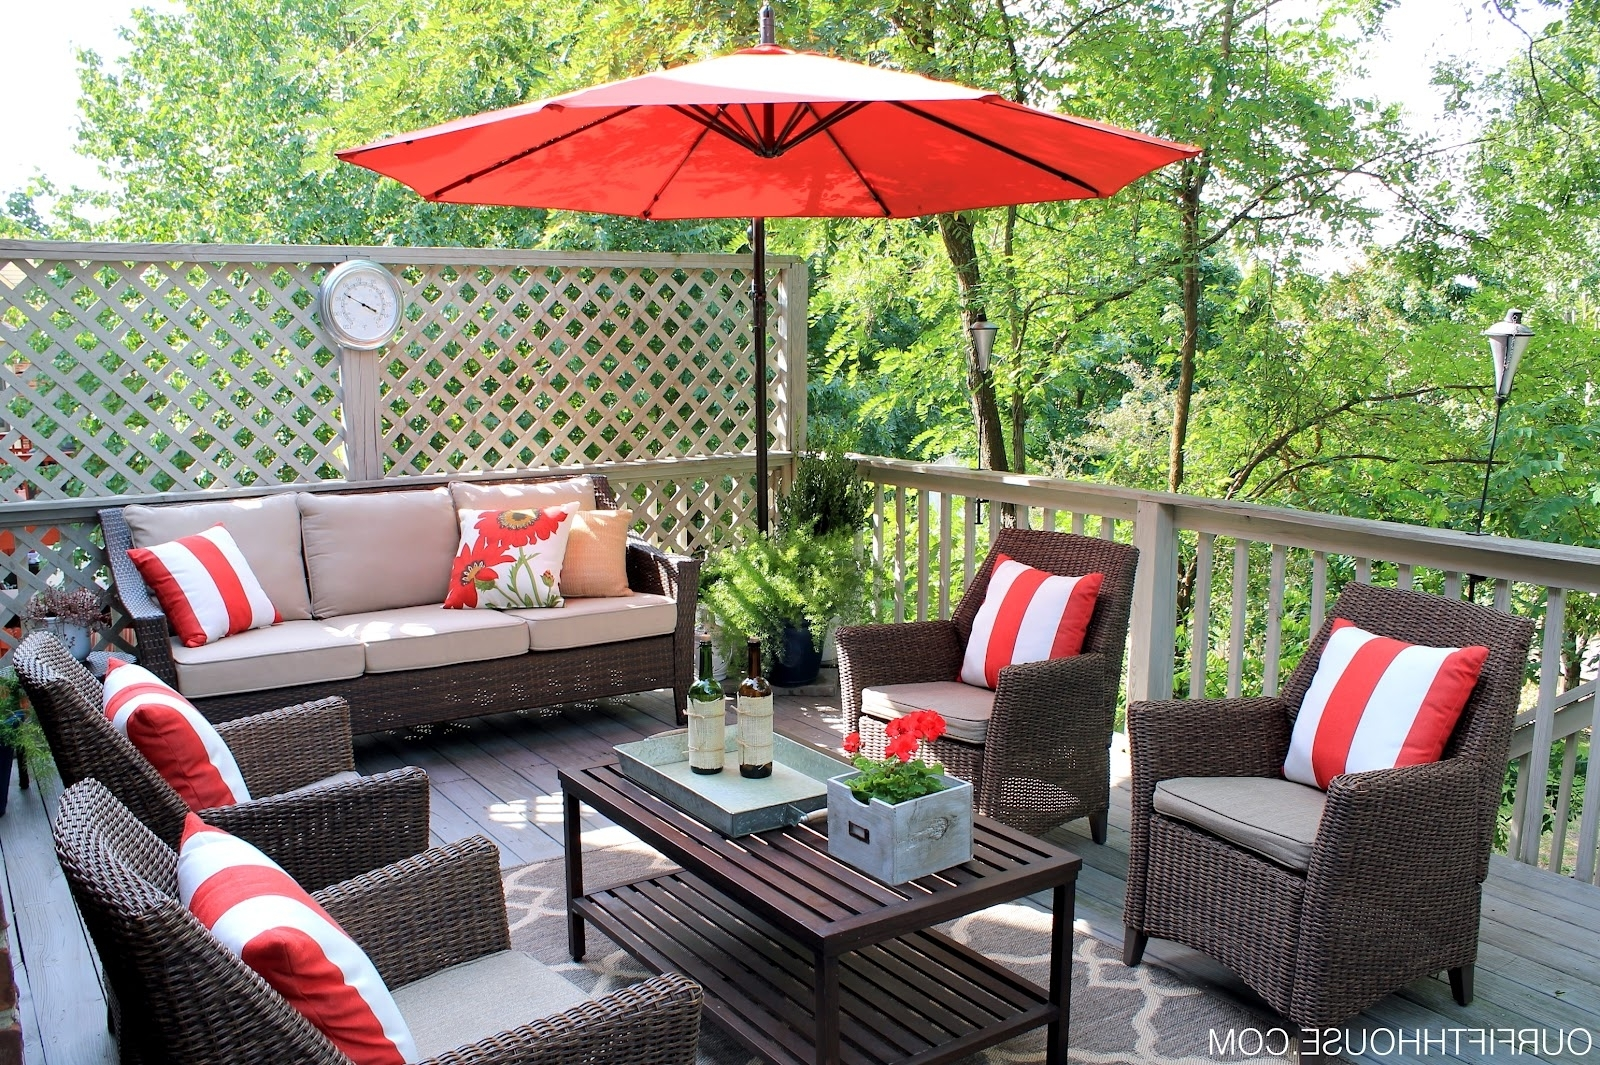 Patio : Red Patio Furniture Outdoor Conversation Sets Ideas Inside Popular Red Patio Conversation Sets (View 20 of 20)